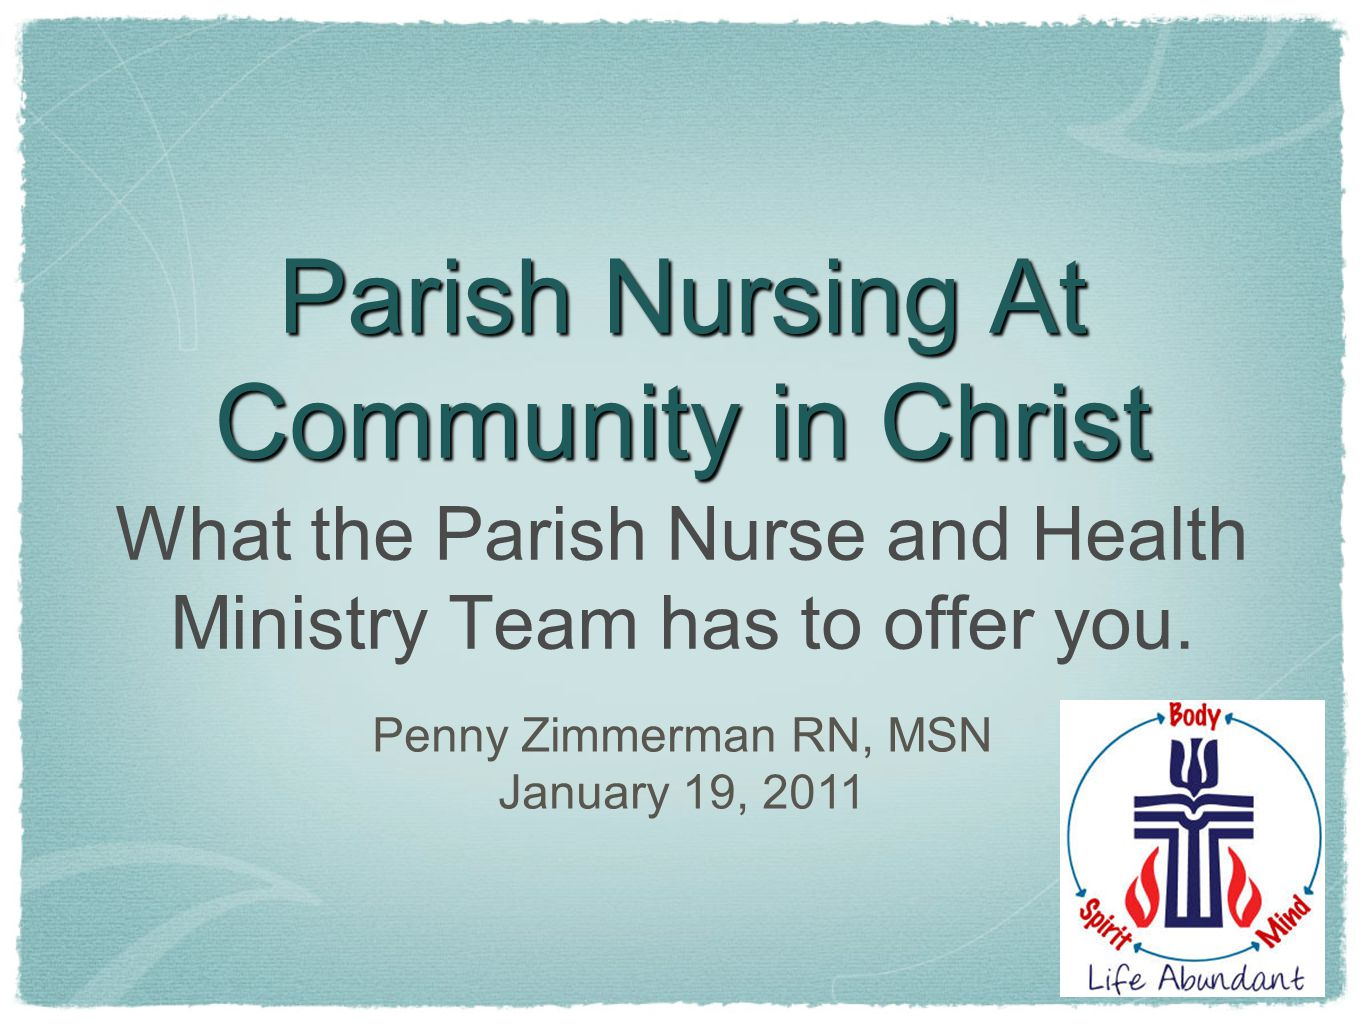 Parish Nursing At Community in Christ What the Parish Nurse and Health Ministry Team has to offer you.